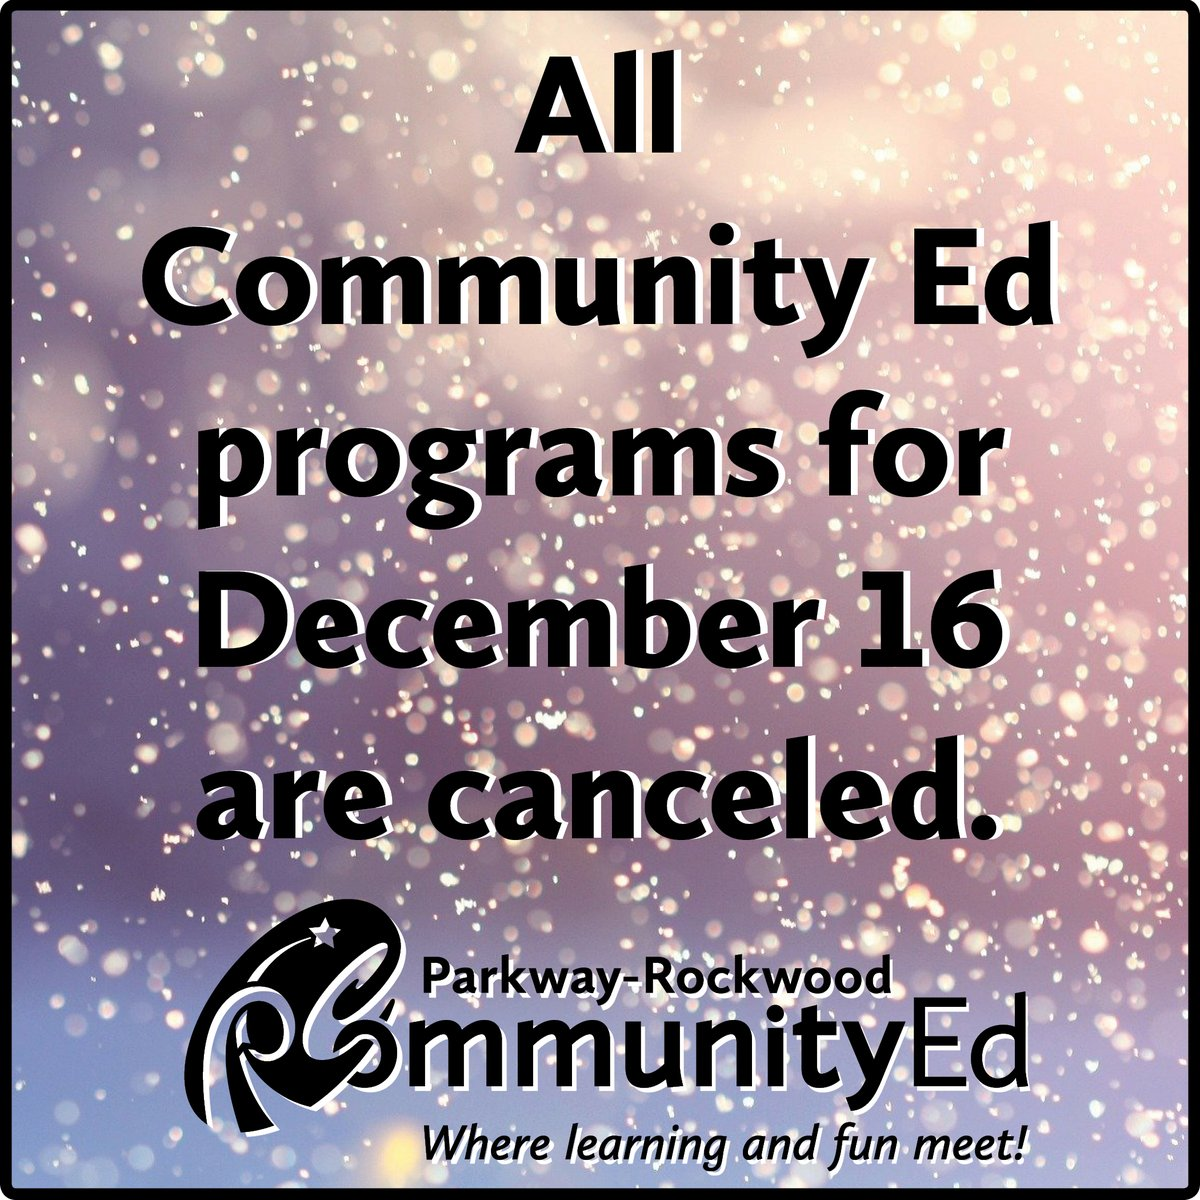 Due to severe weather, all Community Ed programs for December 16 are canceled. Please stay safe.